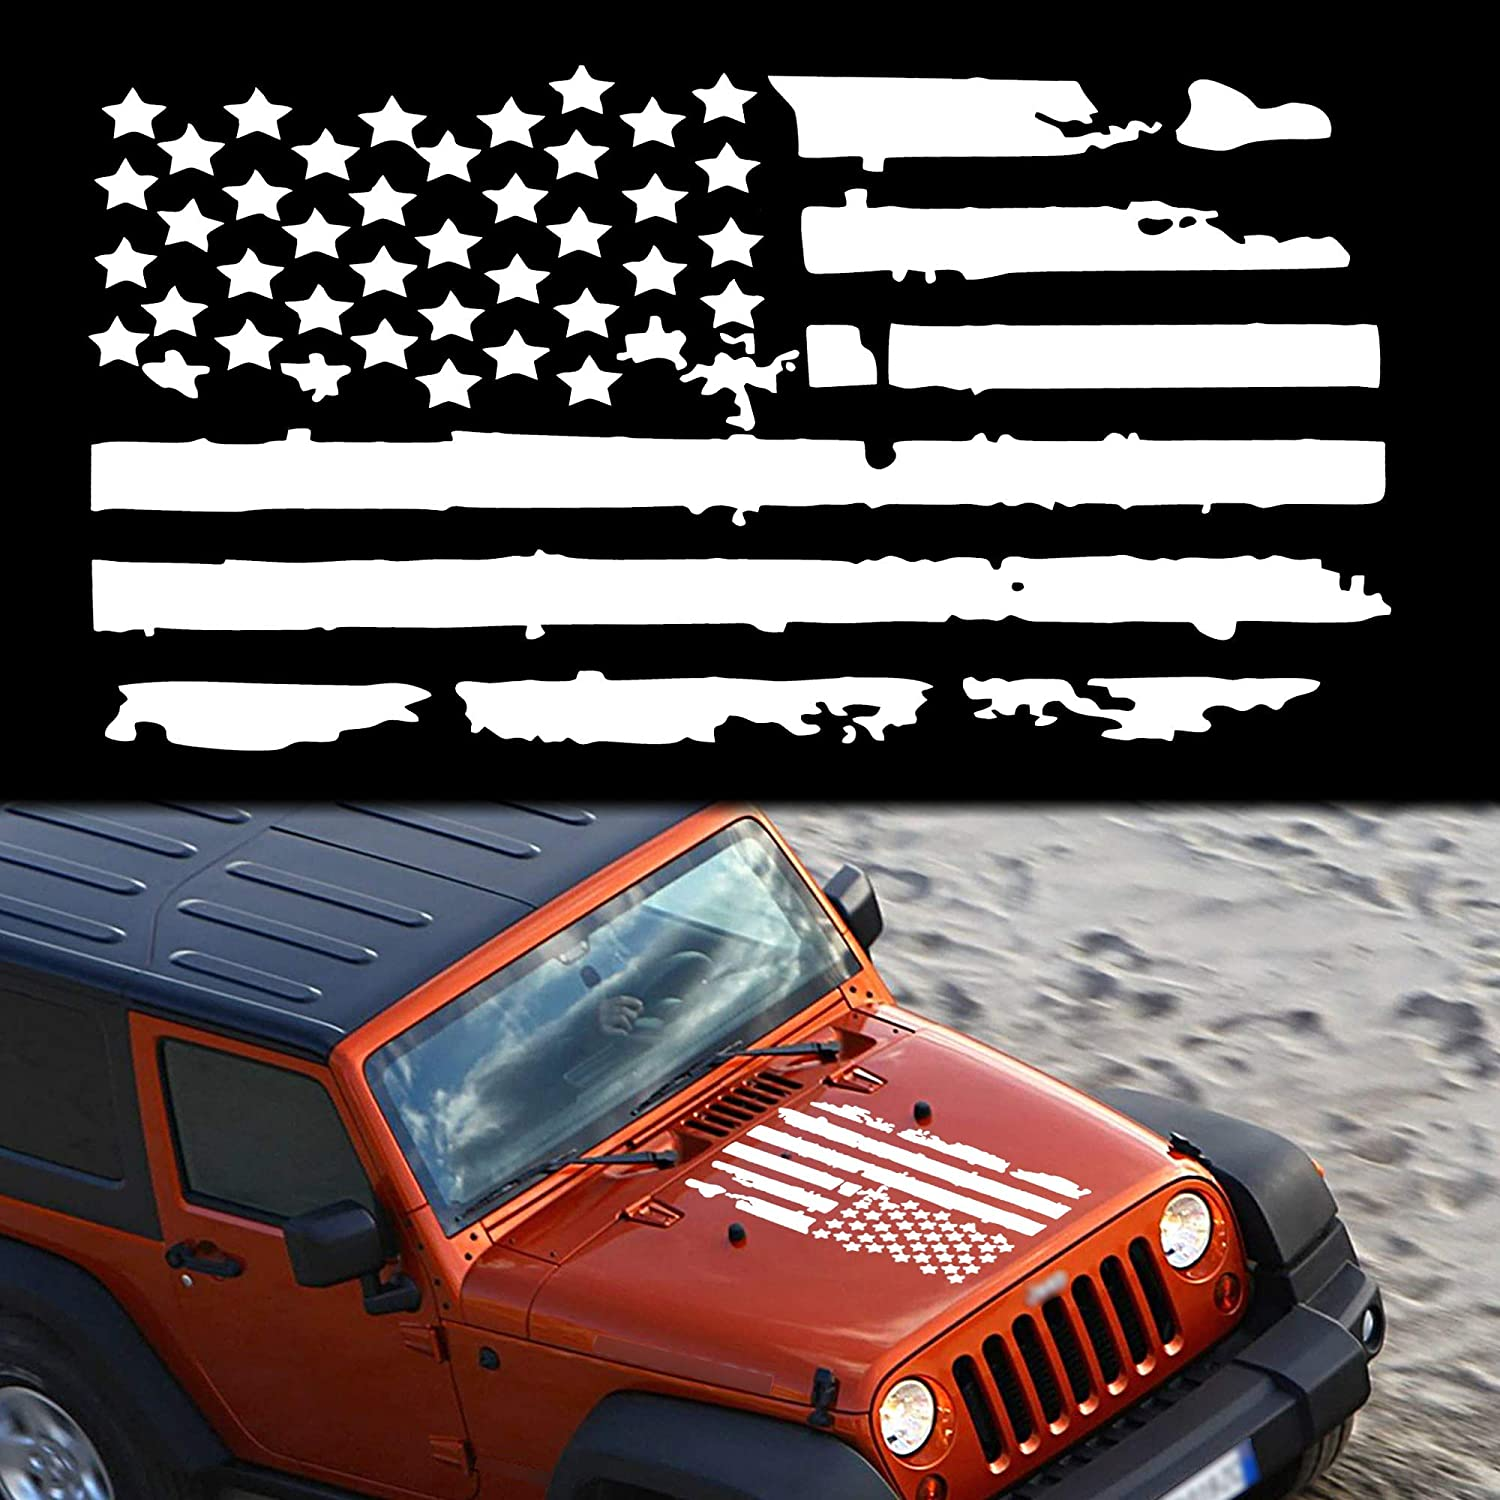 TOMALL 23.6'' American Flag Distressed Decal Hood F for Auto Cheap Sacramento Mall super special price USA